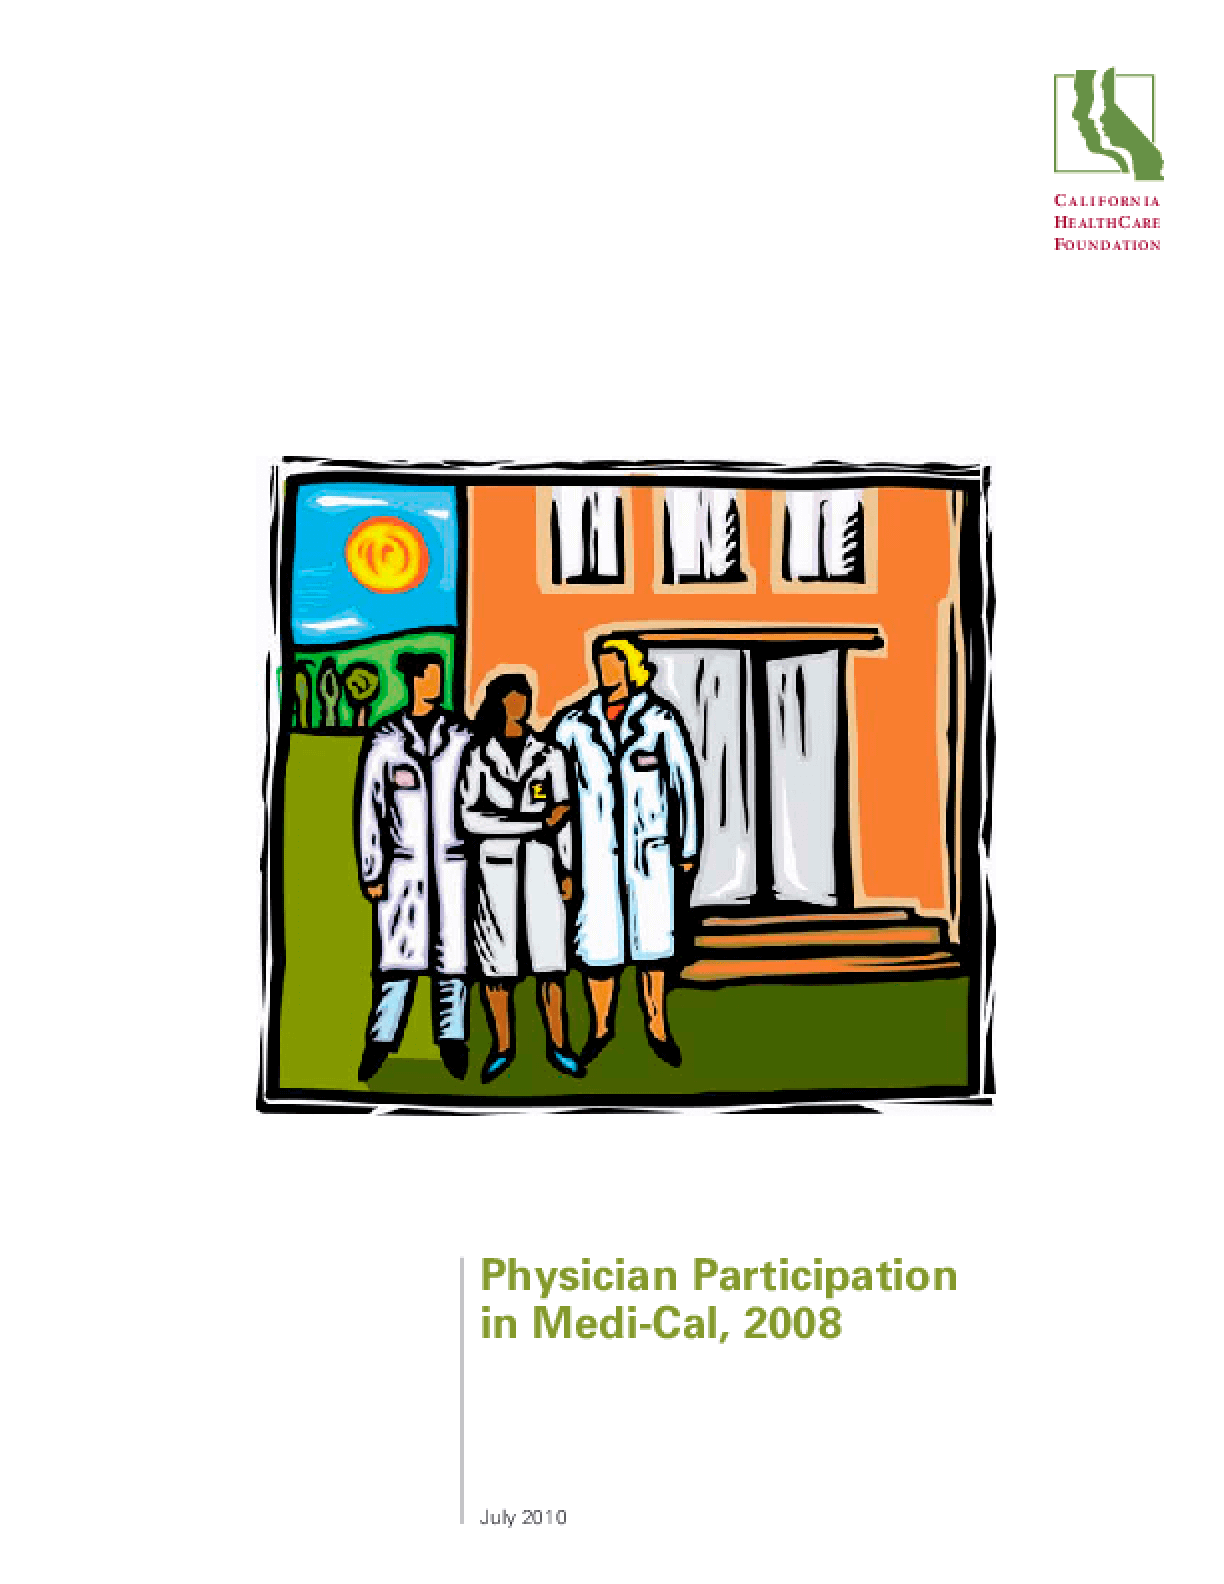 Physician Participation in Medi-Cal, 2008